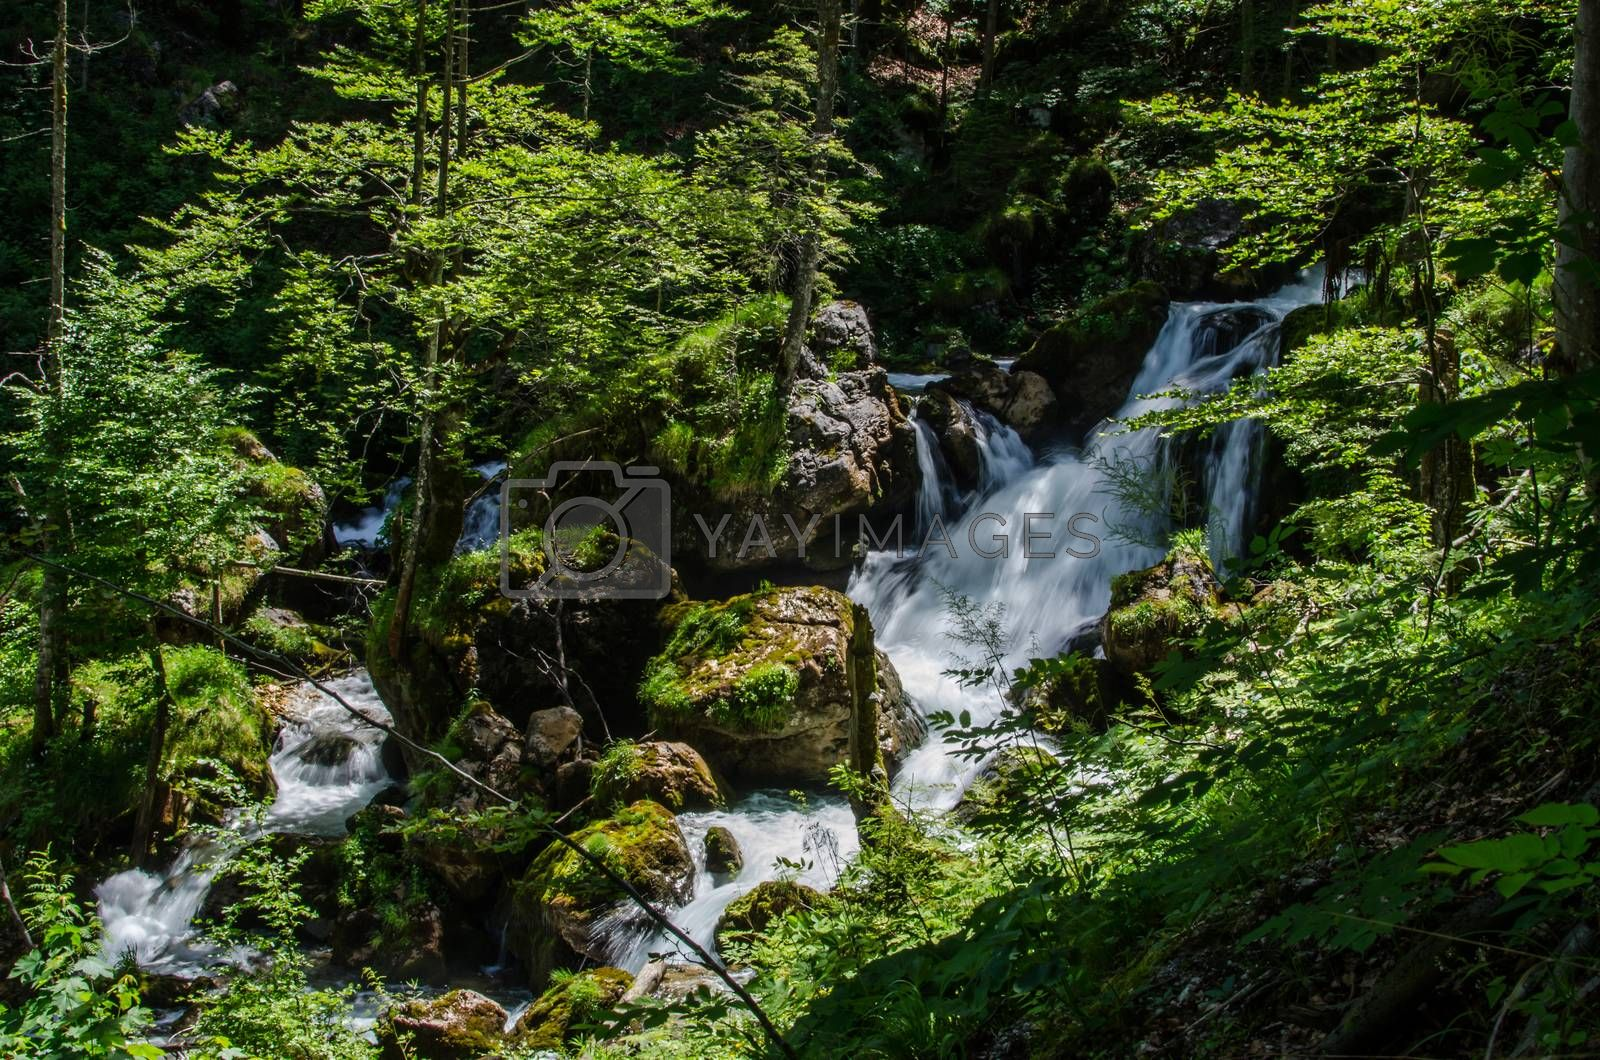 Royalty free image of Waterfalls in the forest by thomaseder